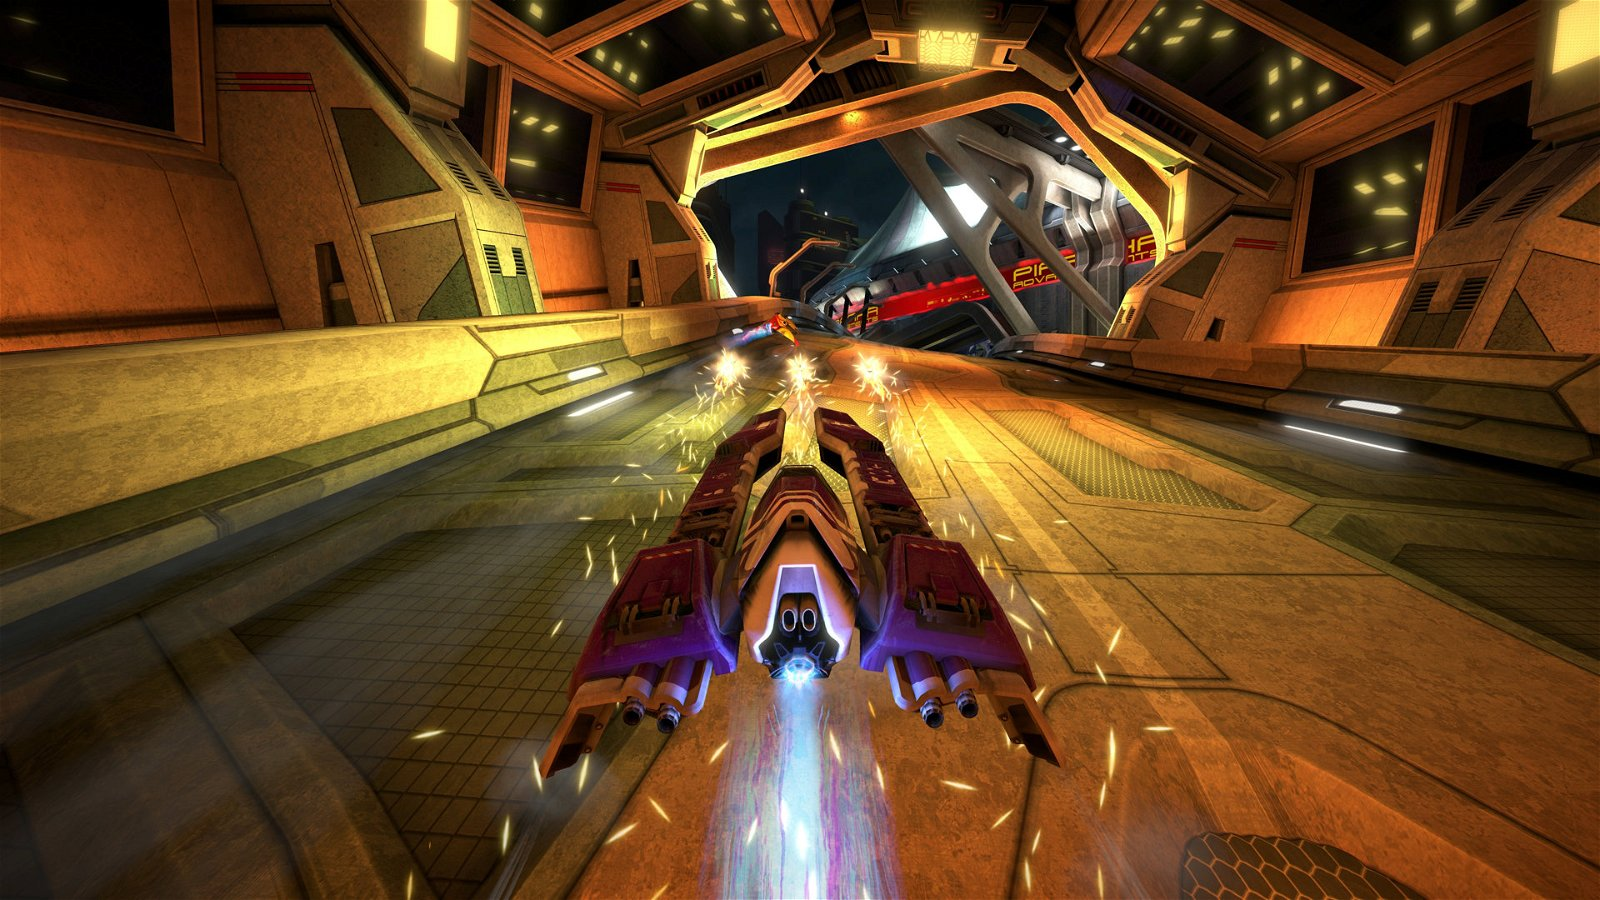 WipEout Omega Collection (PlayStation 4) Review - A Supersonic Update 9